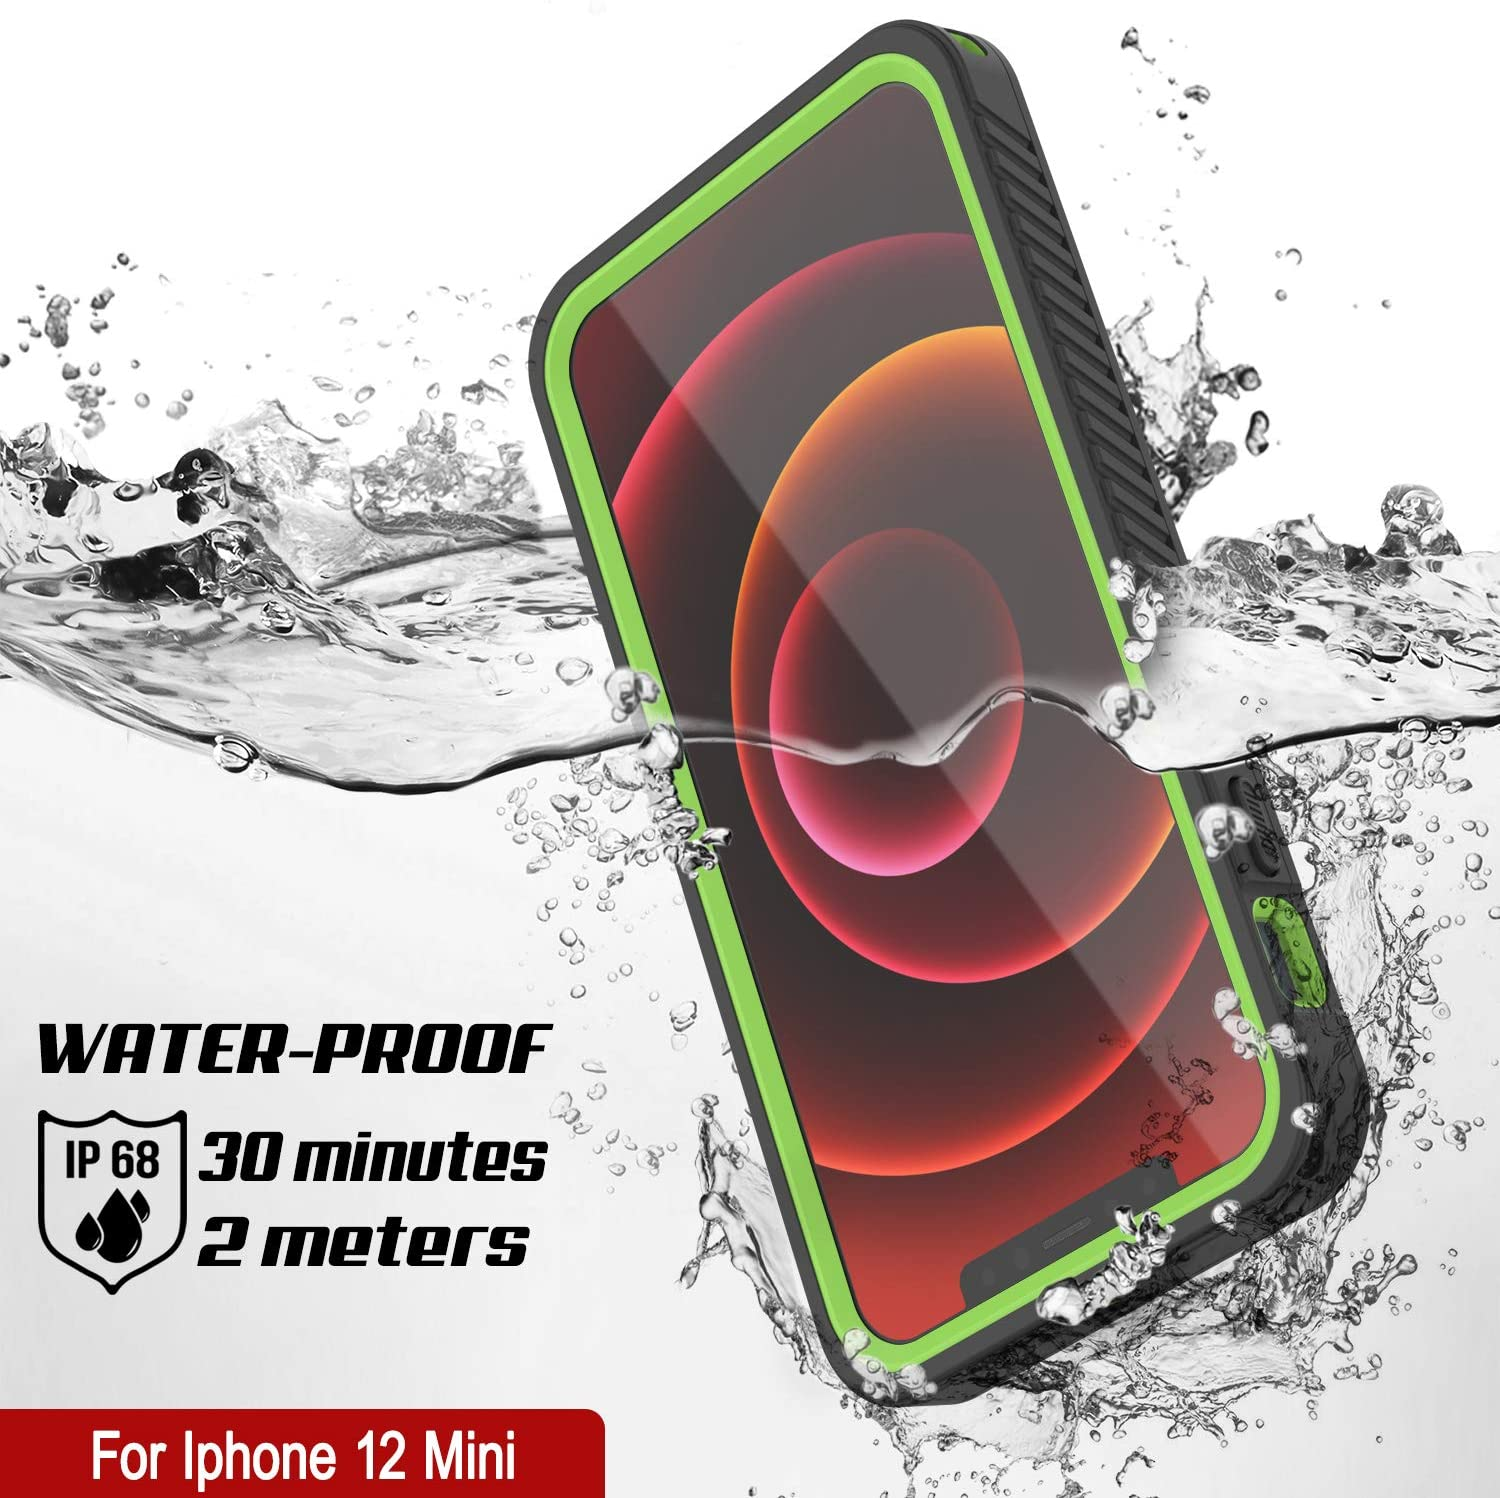 iPhone 12 Mini Waterproof Case, Punkcase [Extreme Series] Armor Cover W/ Built In Screen Protector [Light Green]